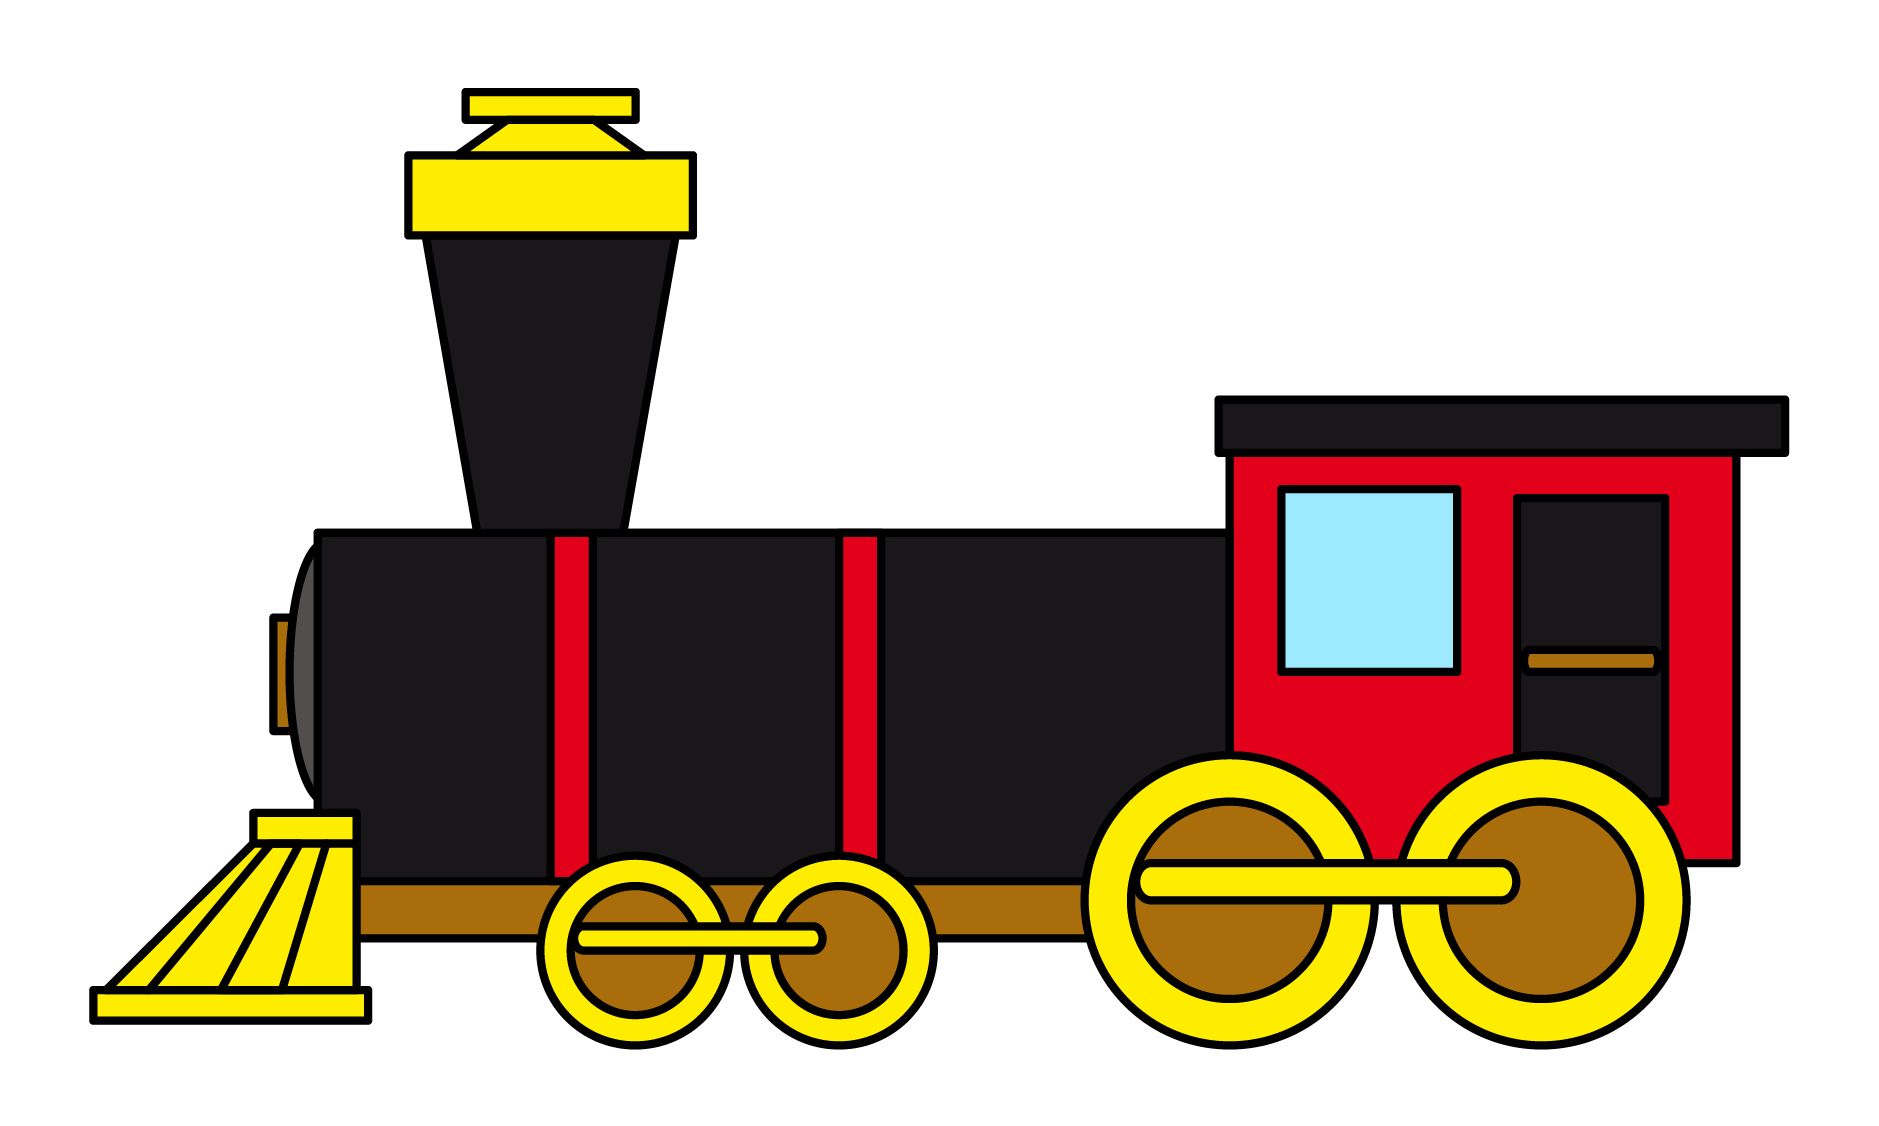 Train clipart #7, Download drawings